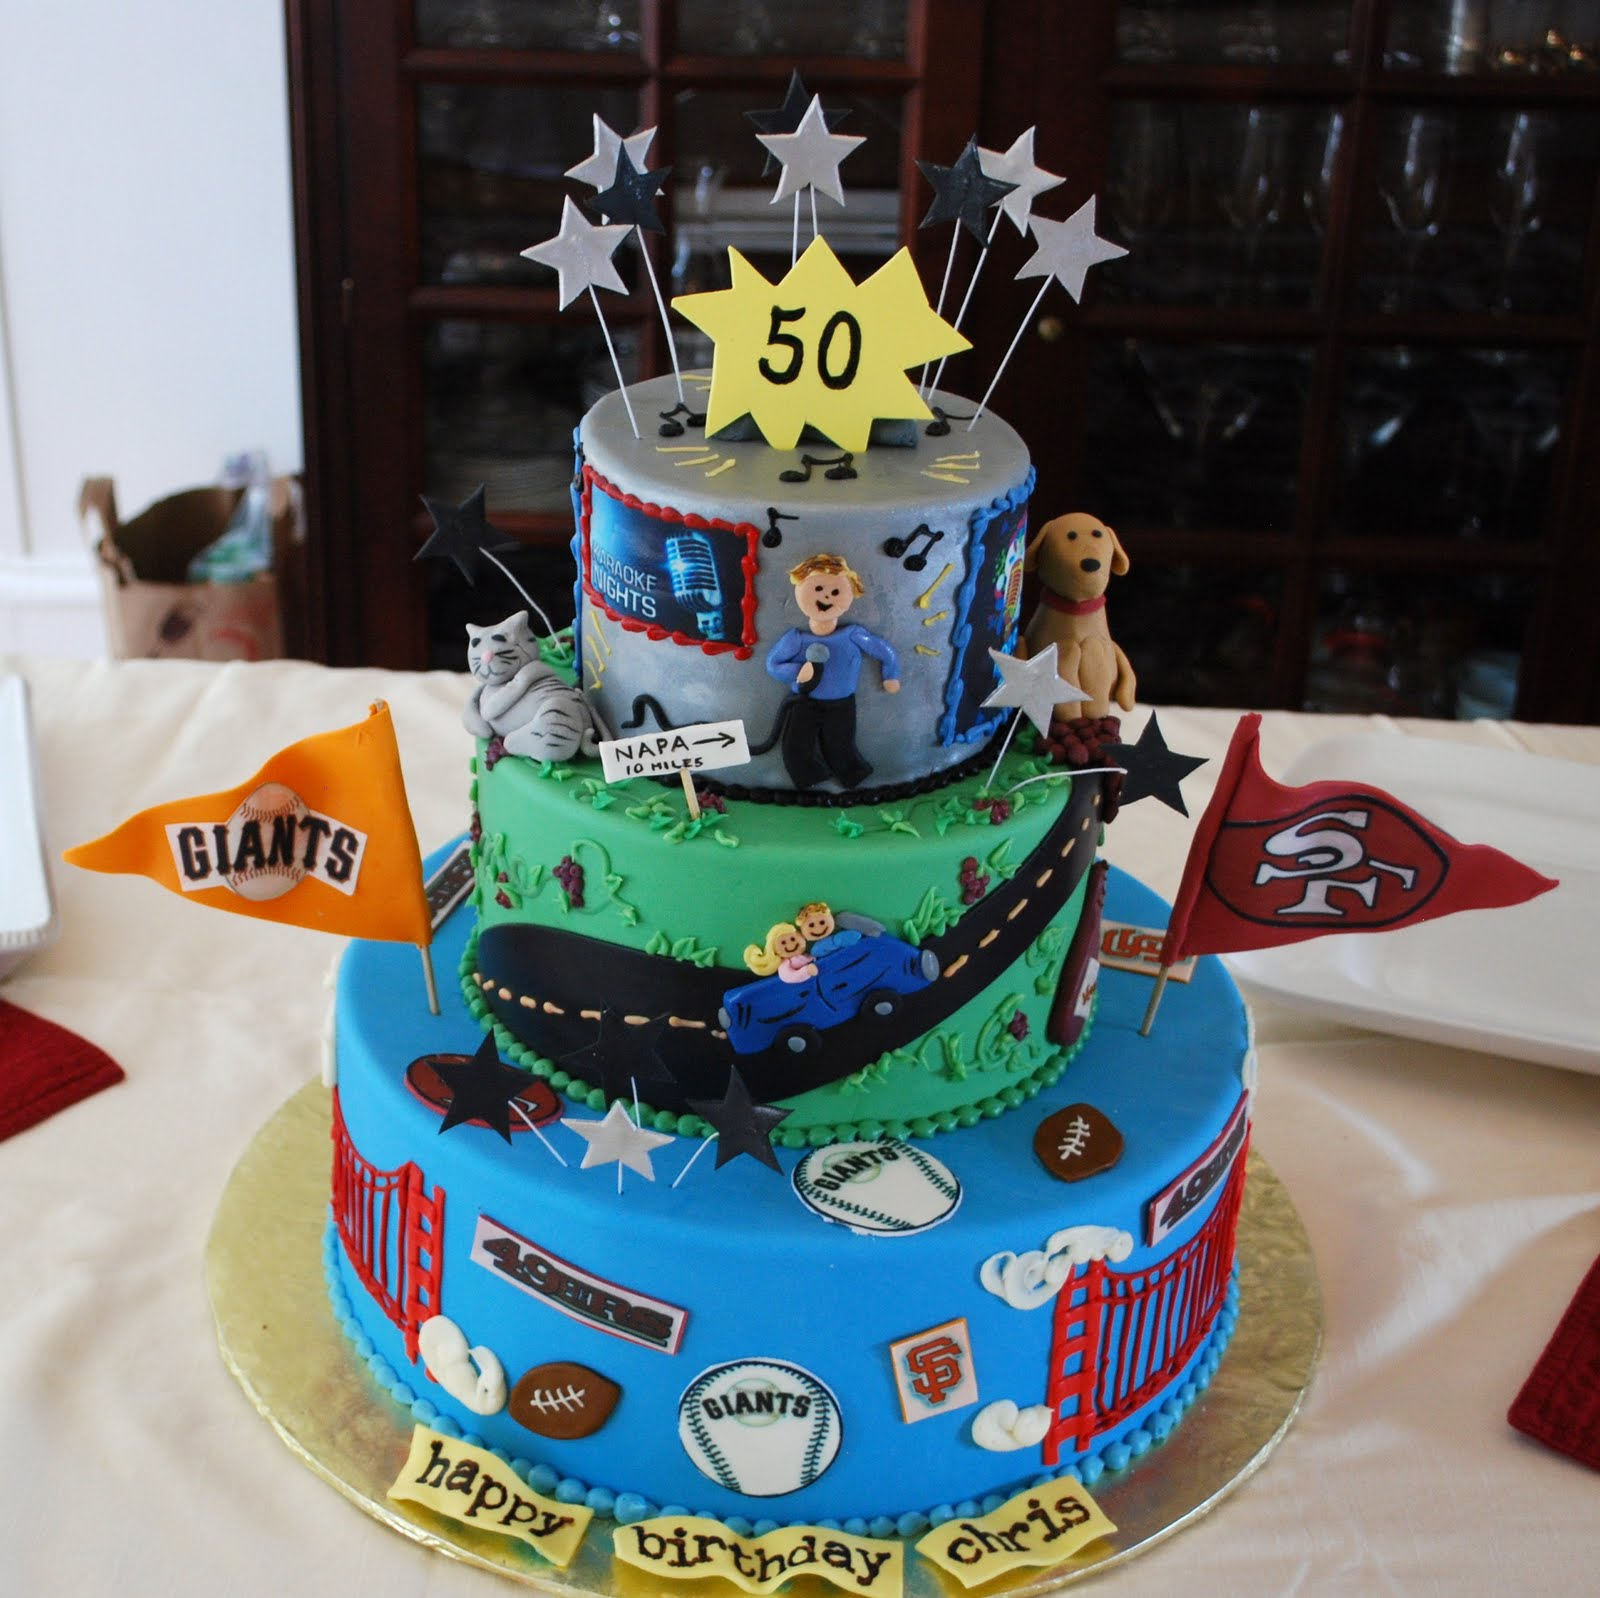 The Beehive 50th Birthday Cake